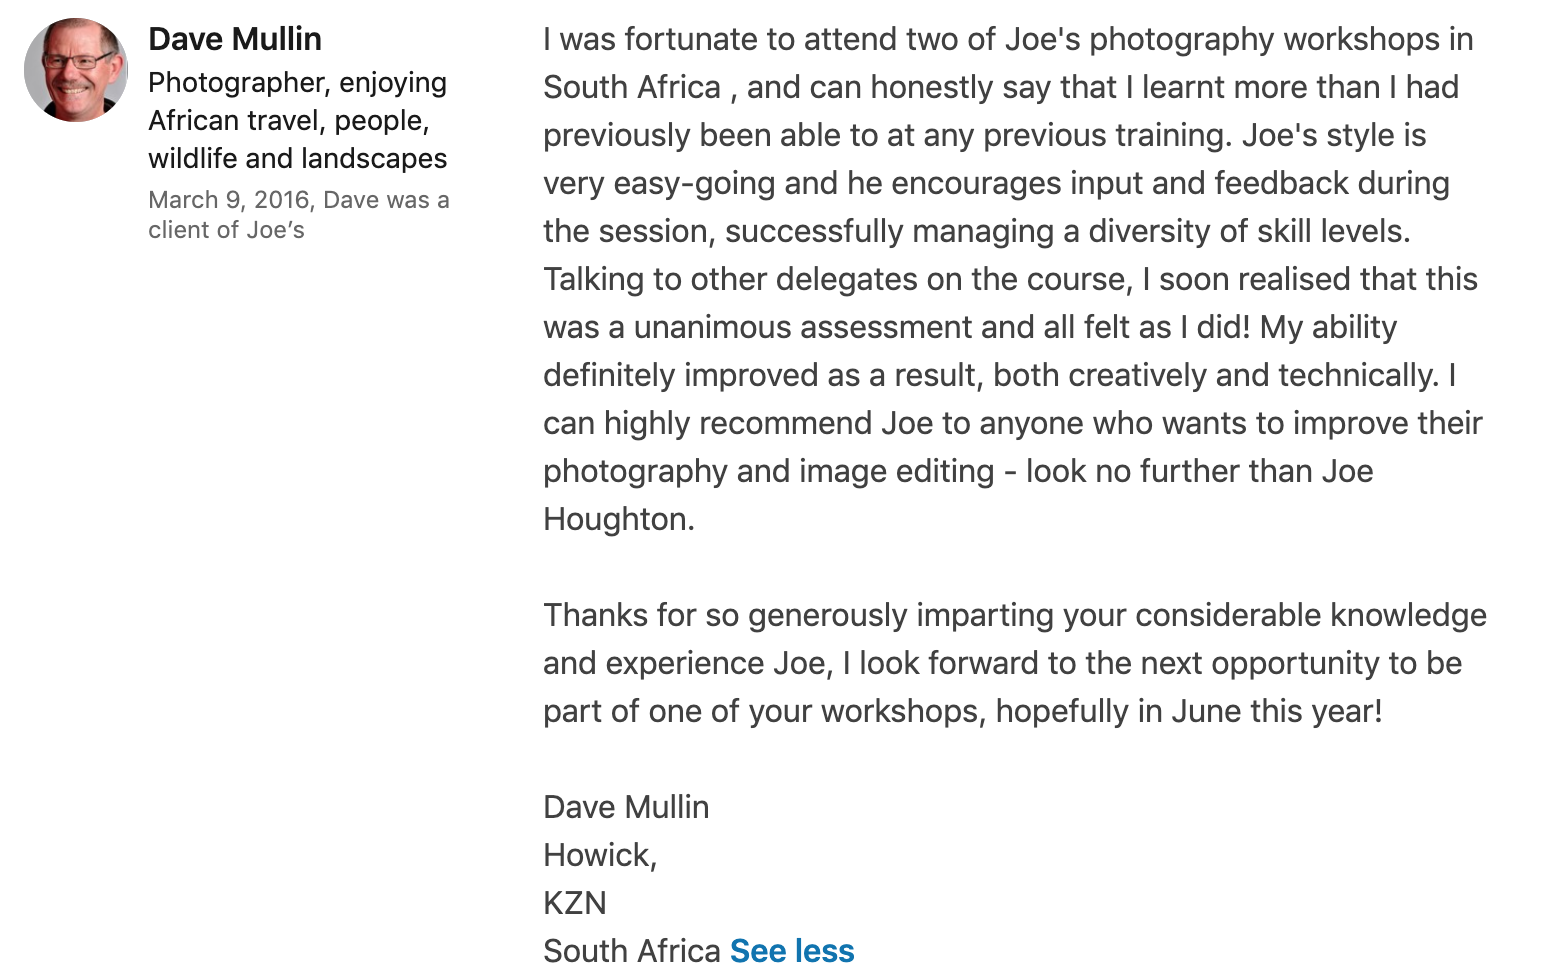 Testimonial - Dave on photography